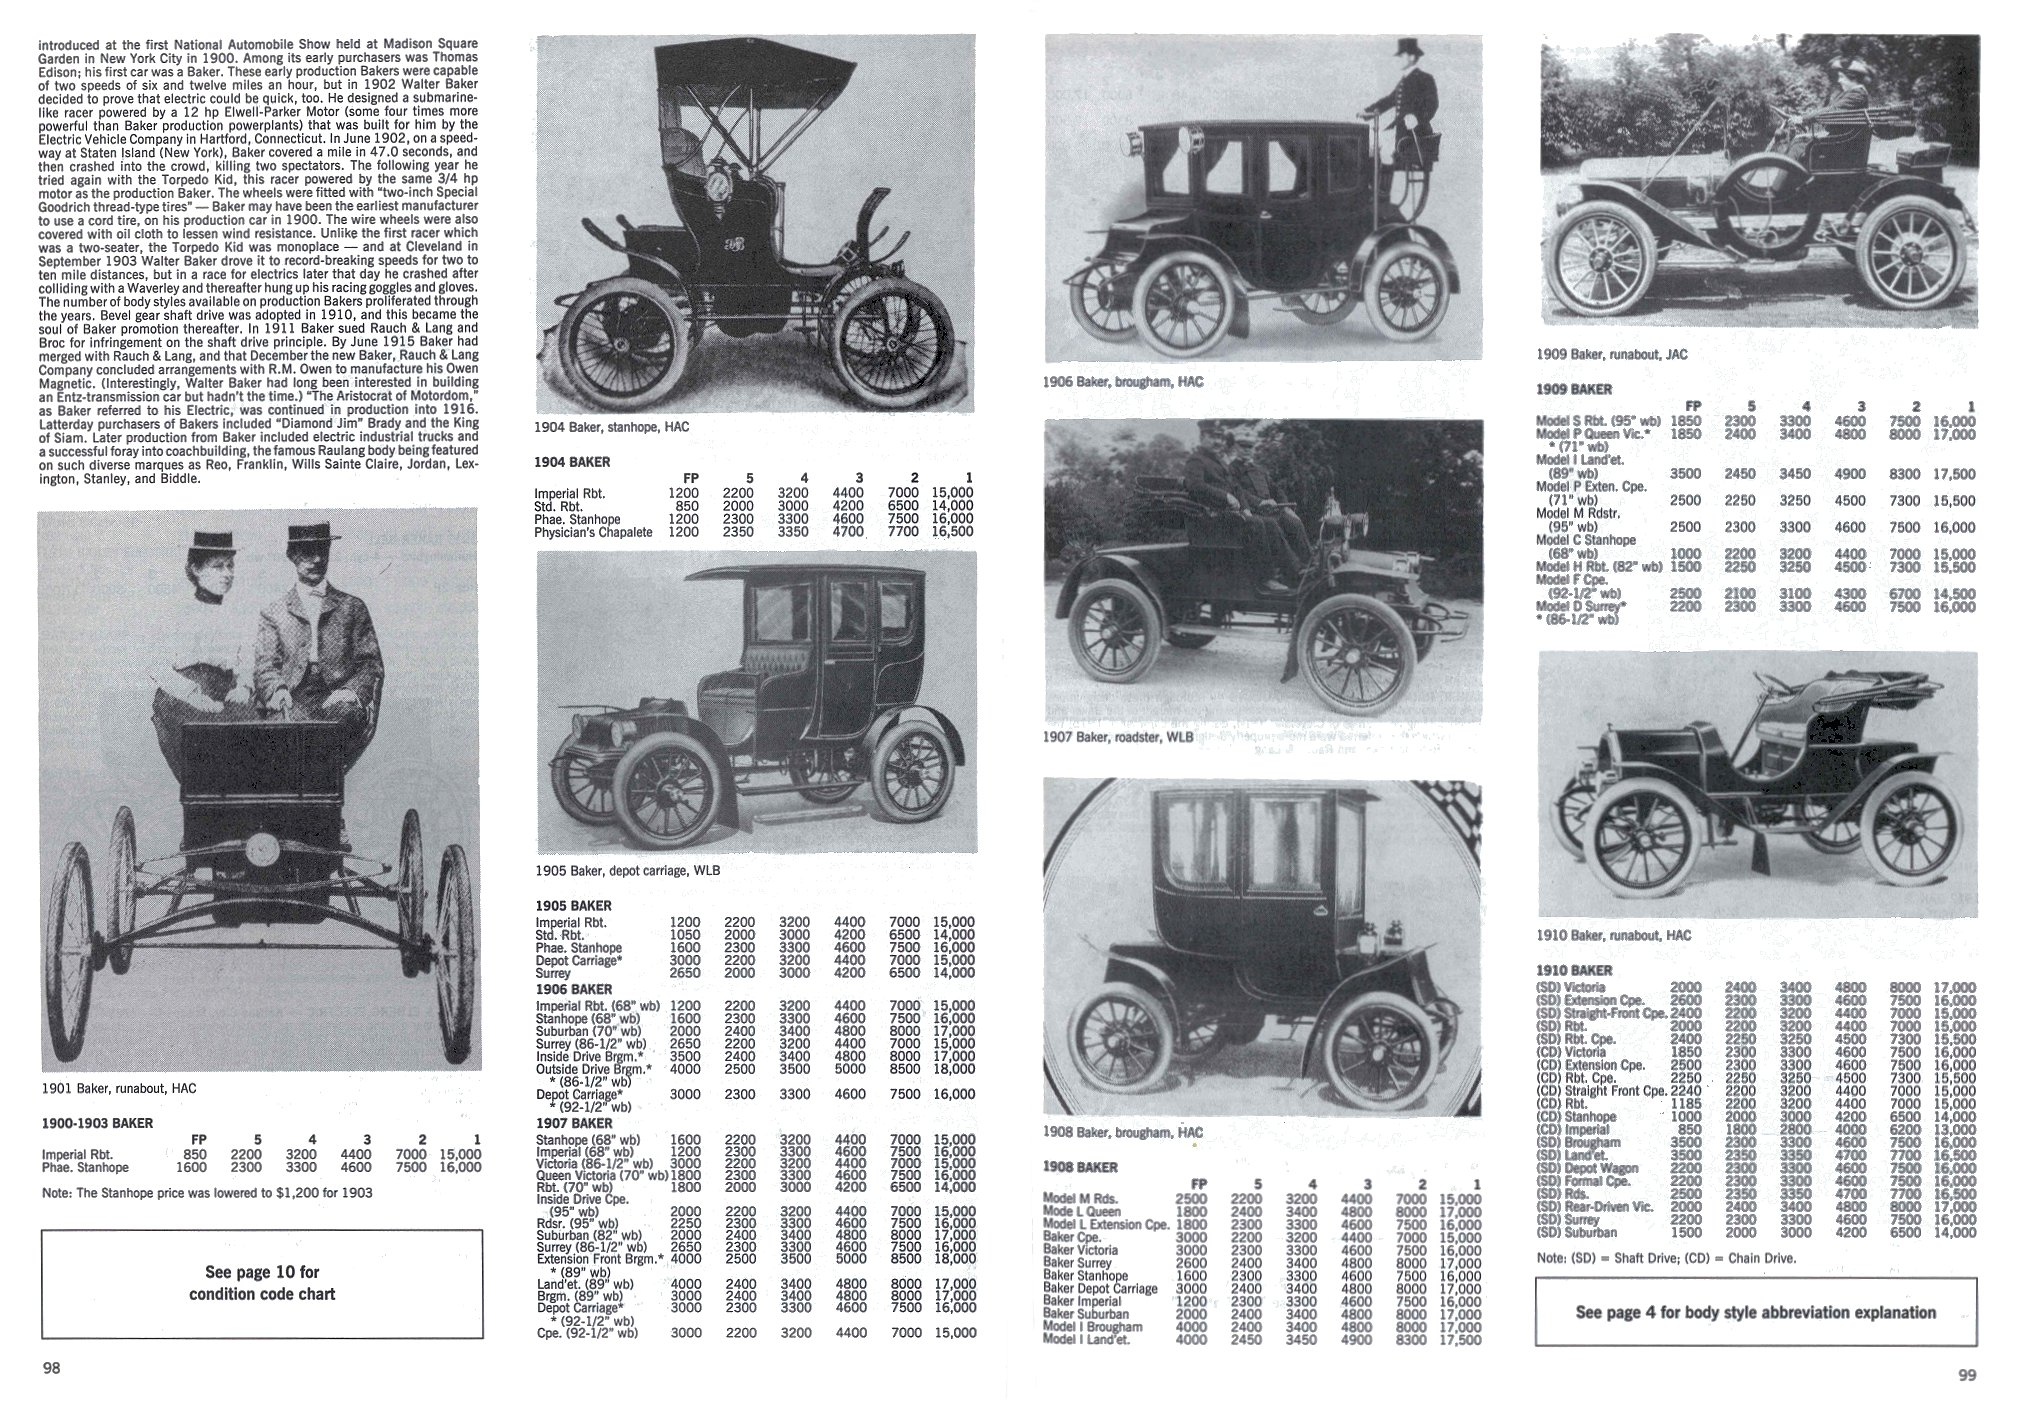 BAKER Electric Cleveland, Ohio 1899-1916 Standard Catalog of AMERICAN CARS 1805-1942 By Beverly Rae Kimes & Henry Austin Clark, Jr. Krause Publications ISBN: 0-87341-428-4 8.5″x11″ pages 98 & 99